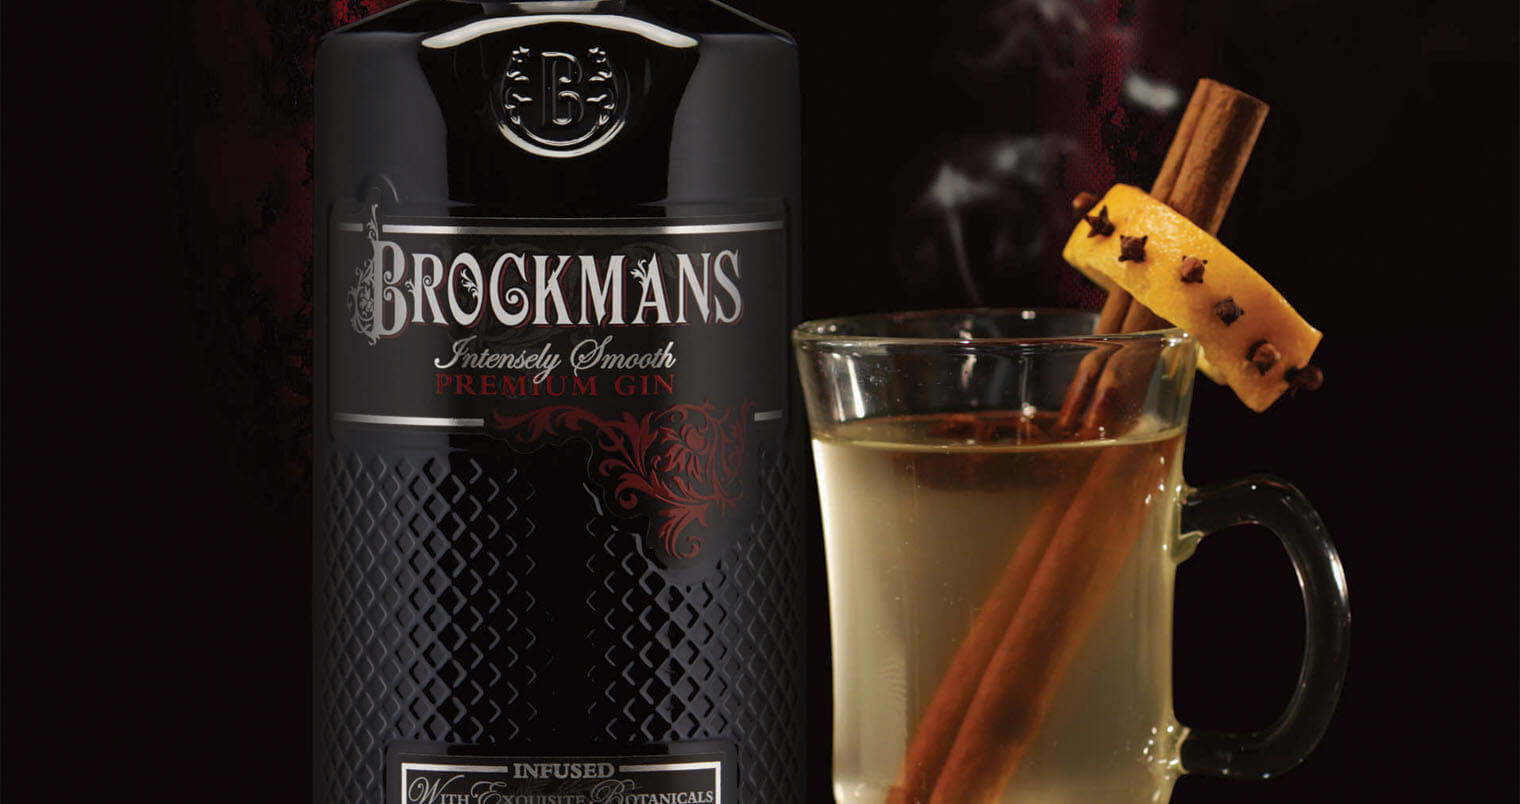 Brockmans Hot Ginger Toddy, featured image